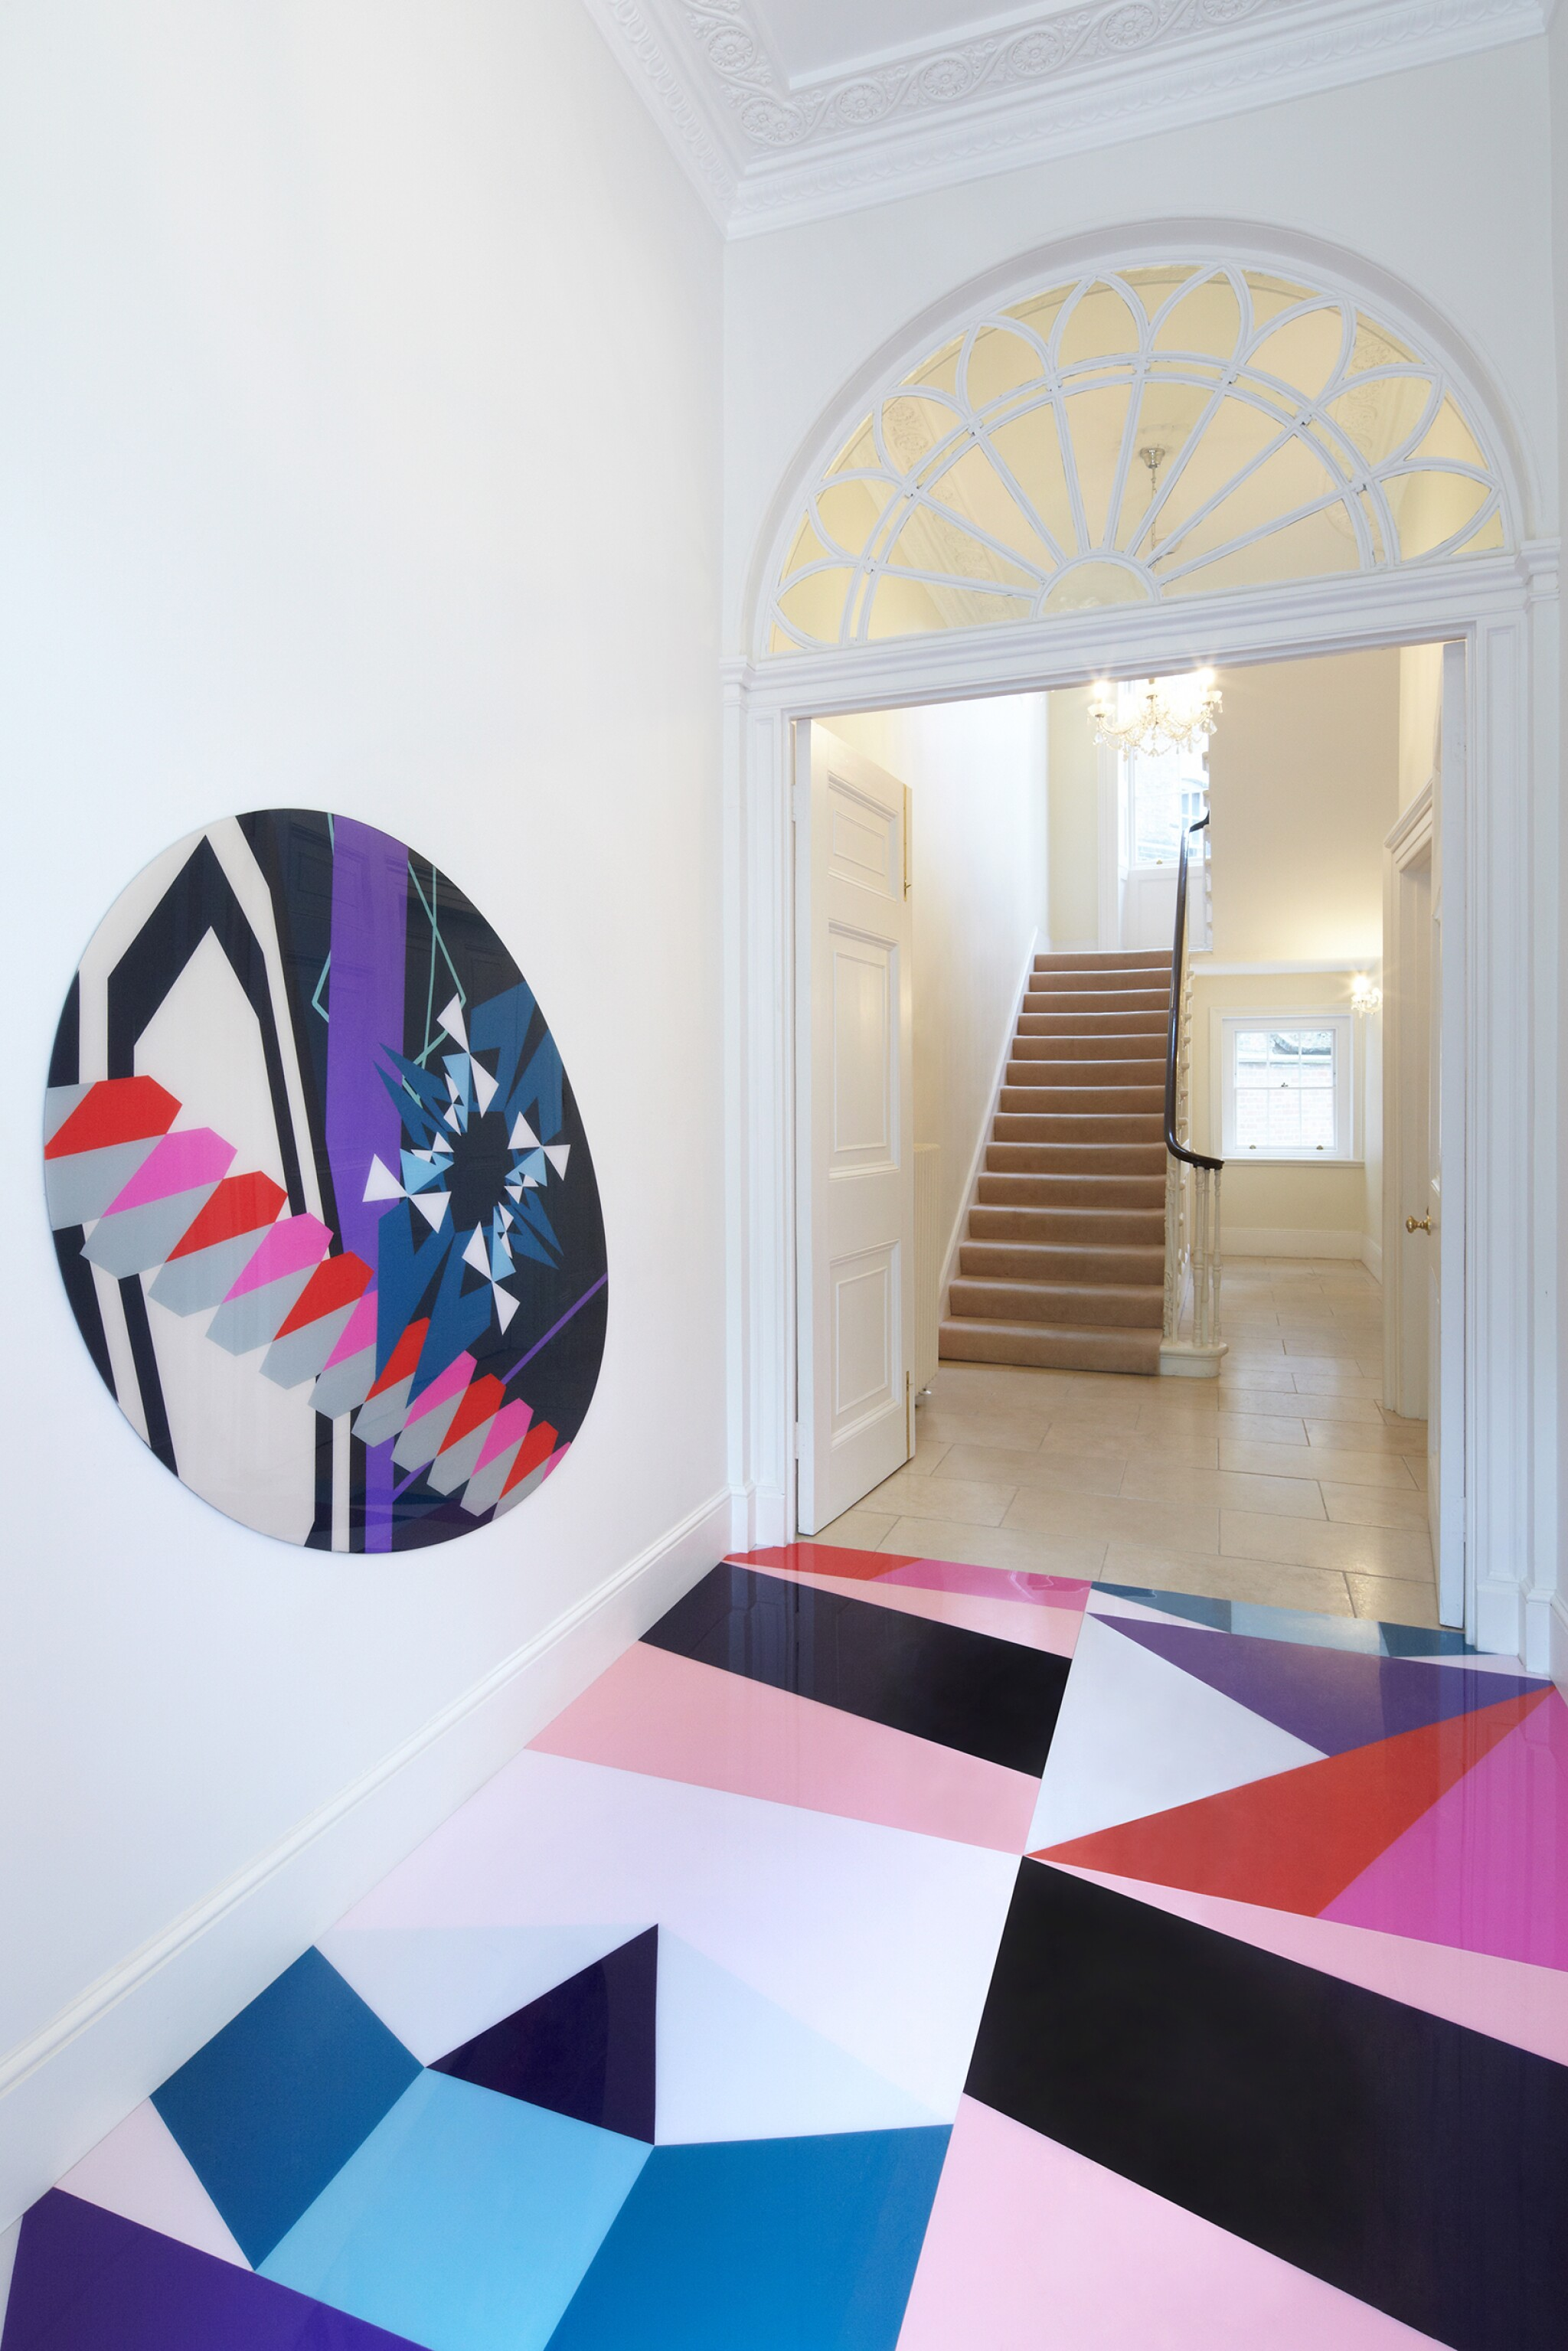 View full screen - View 1 of Lot 32. A bespoke installation, mural or sculpture in a public or private context.